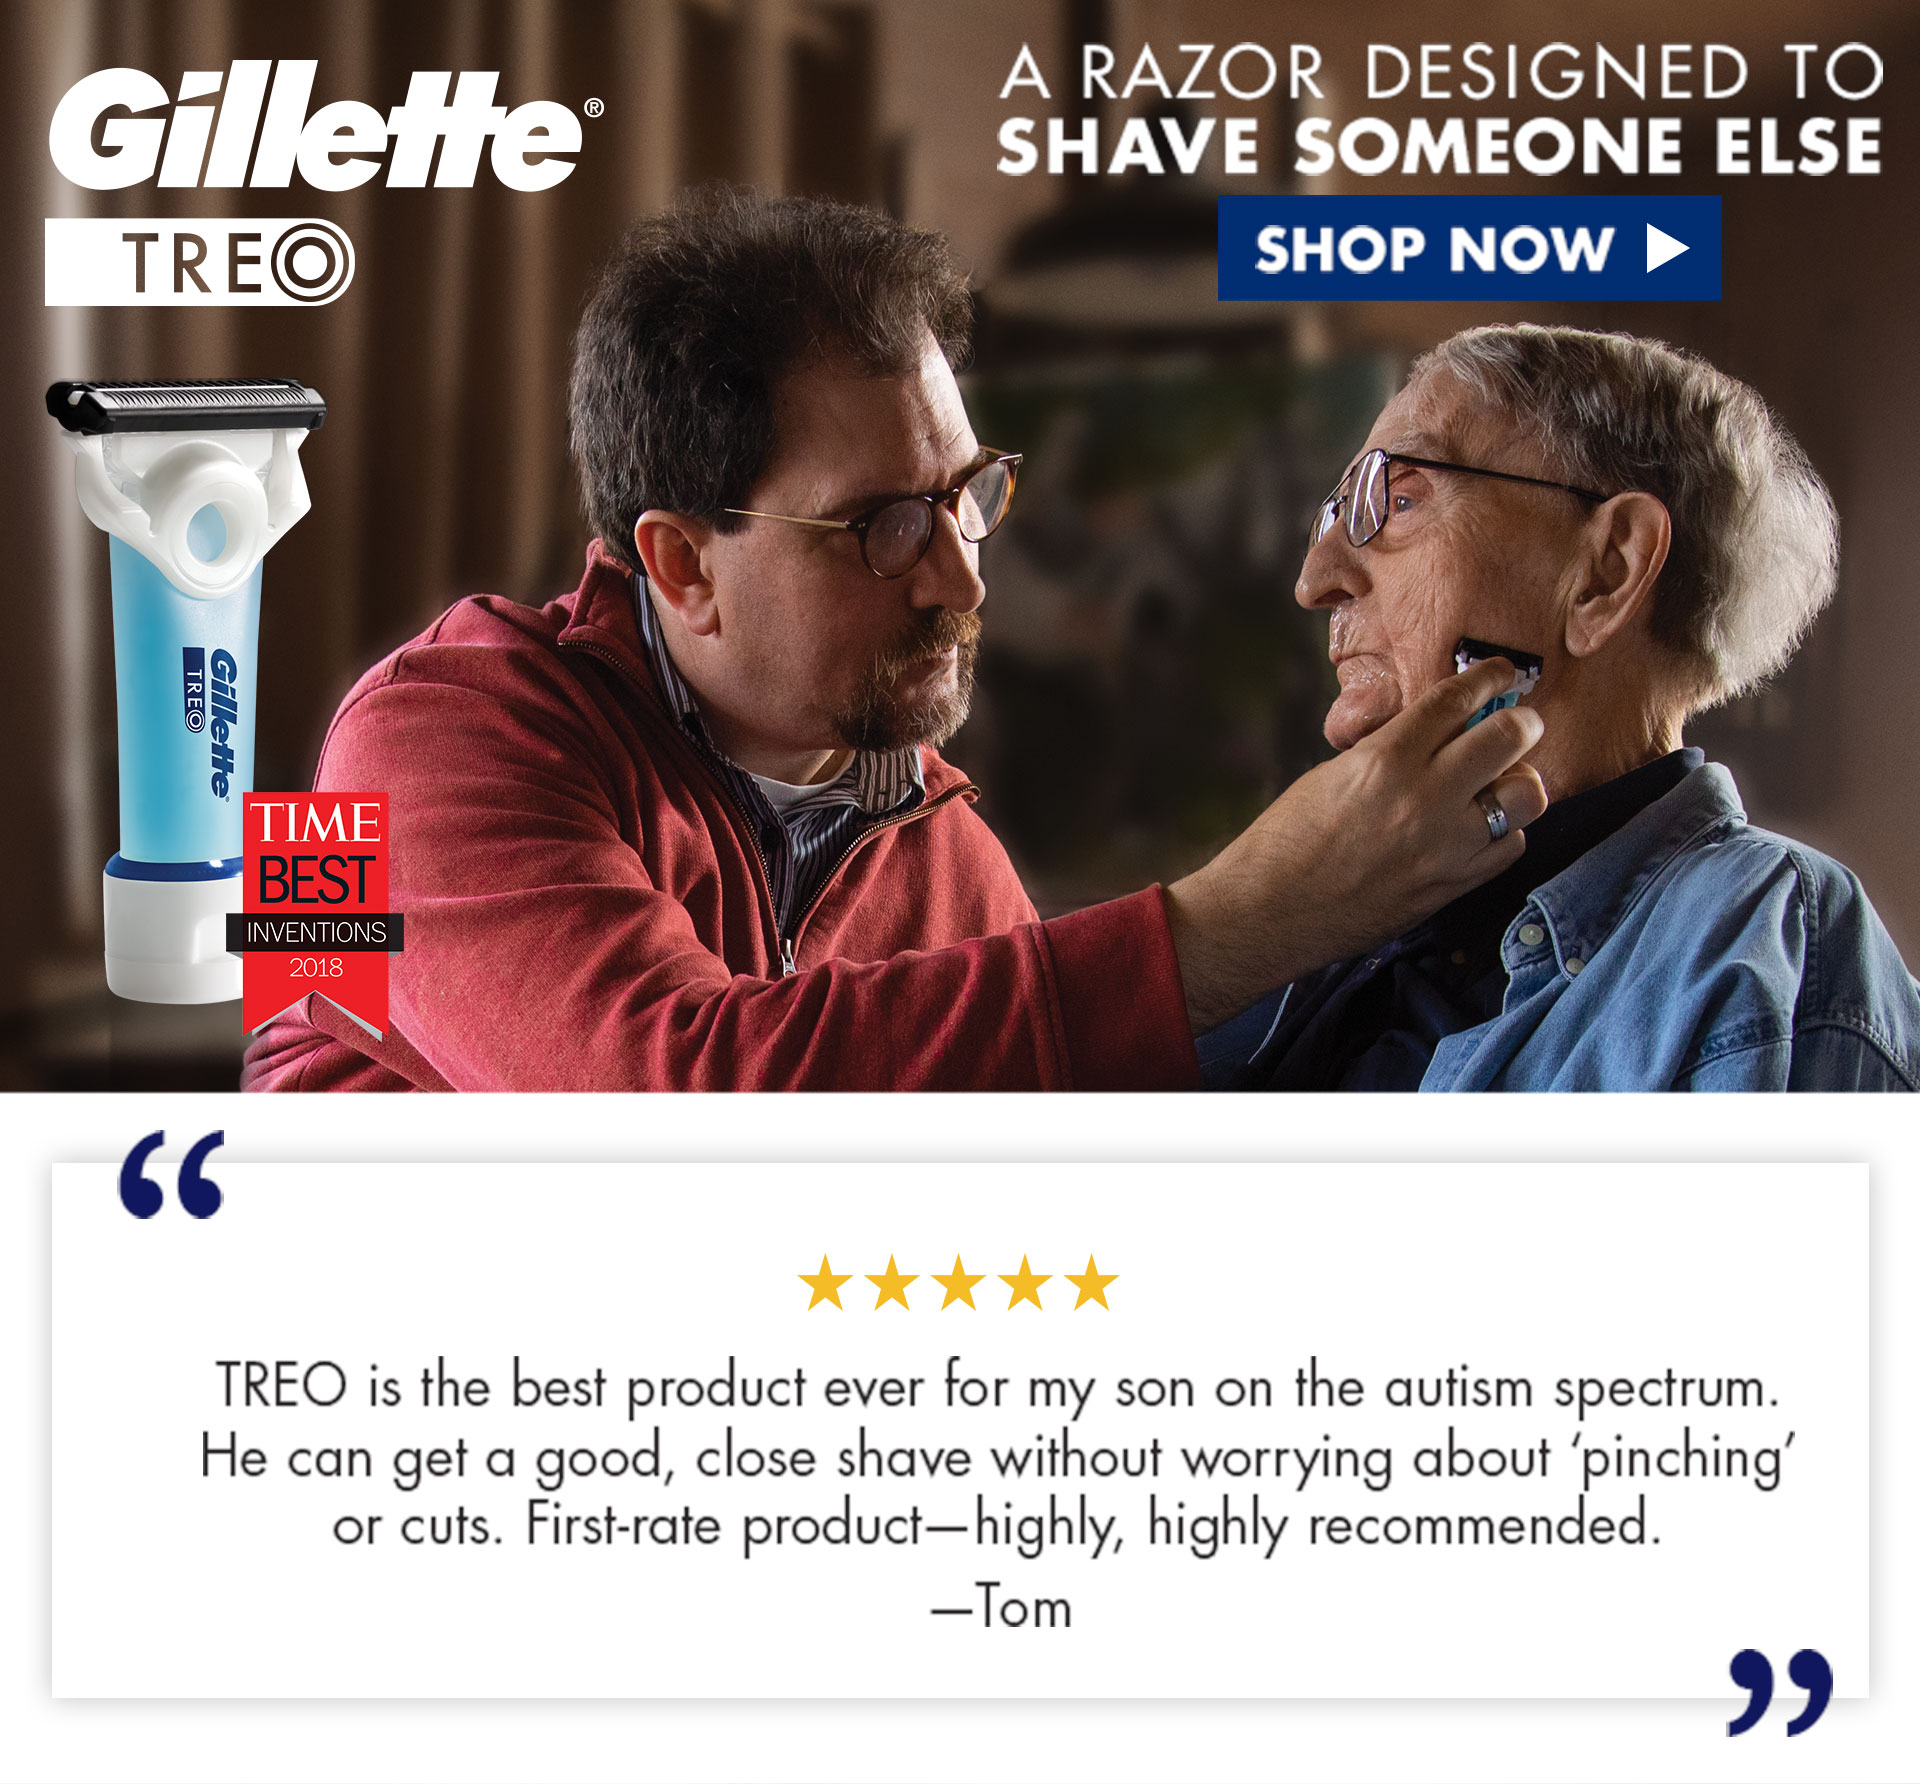 Gillette TREO. A razor designed to shave someone else. Shop Now. 'TREO is the best product ever for my son on the autism spectrum. He can get a good, close shave without worrying about pinching or cuts. First-rate product - highly, highly recommended.' Tom.